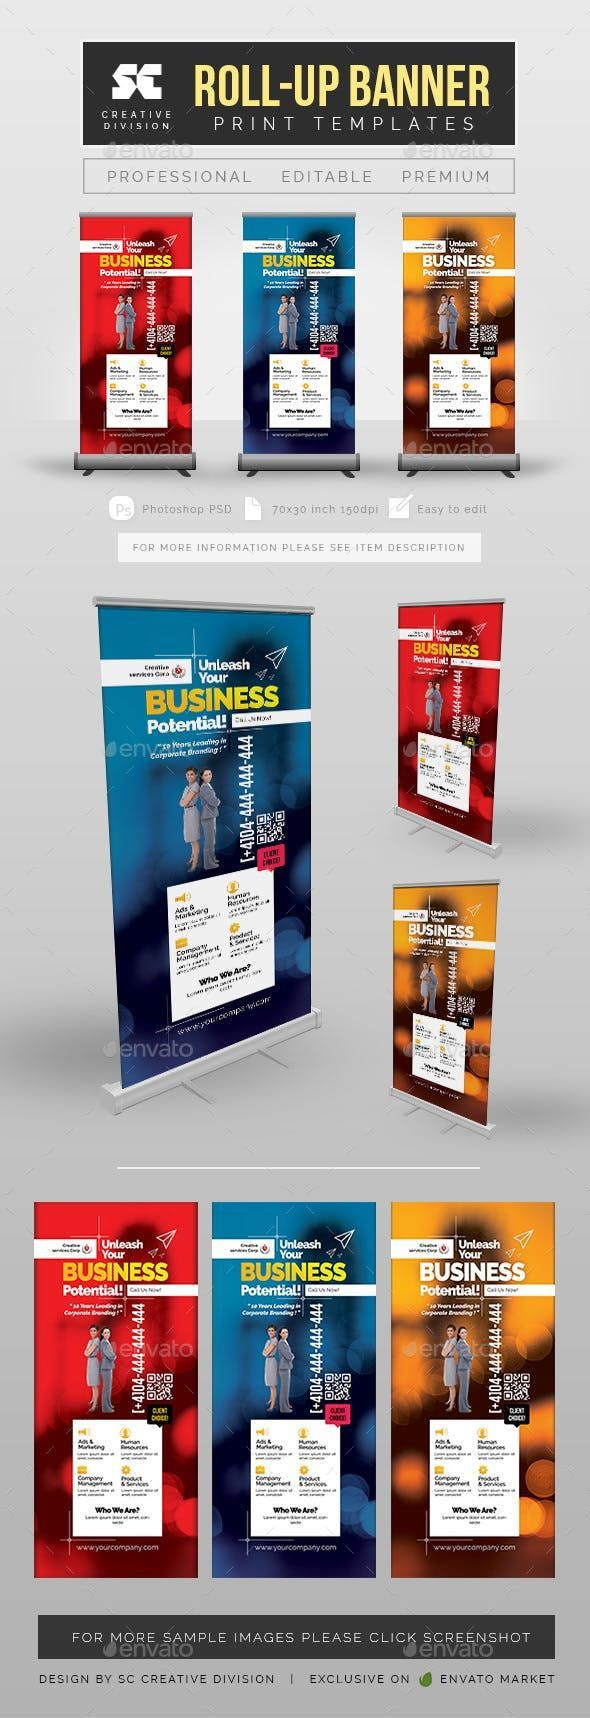 Roll Up Banner Template Best Of Business Roll Up Banner Signage Print Templates